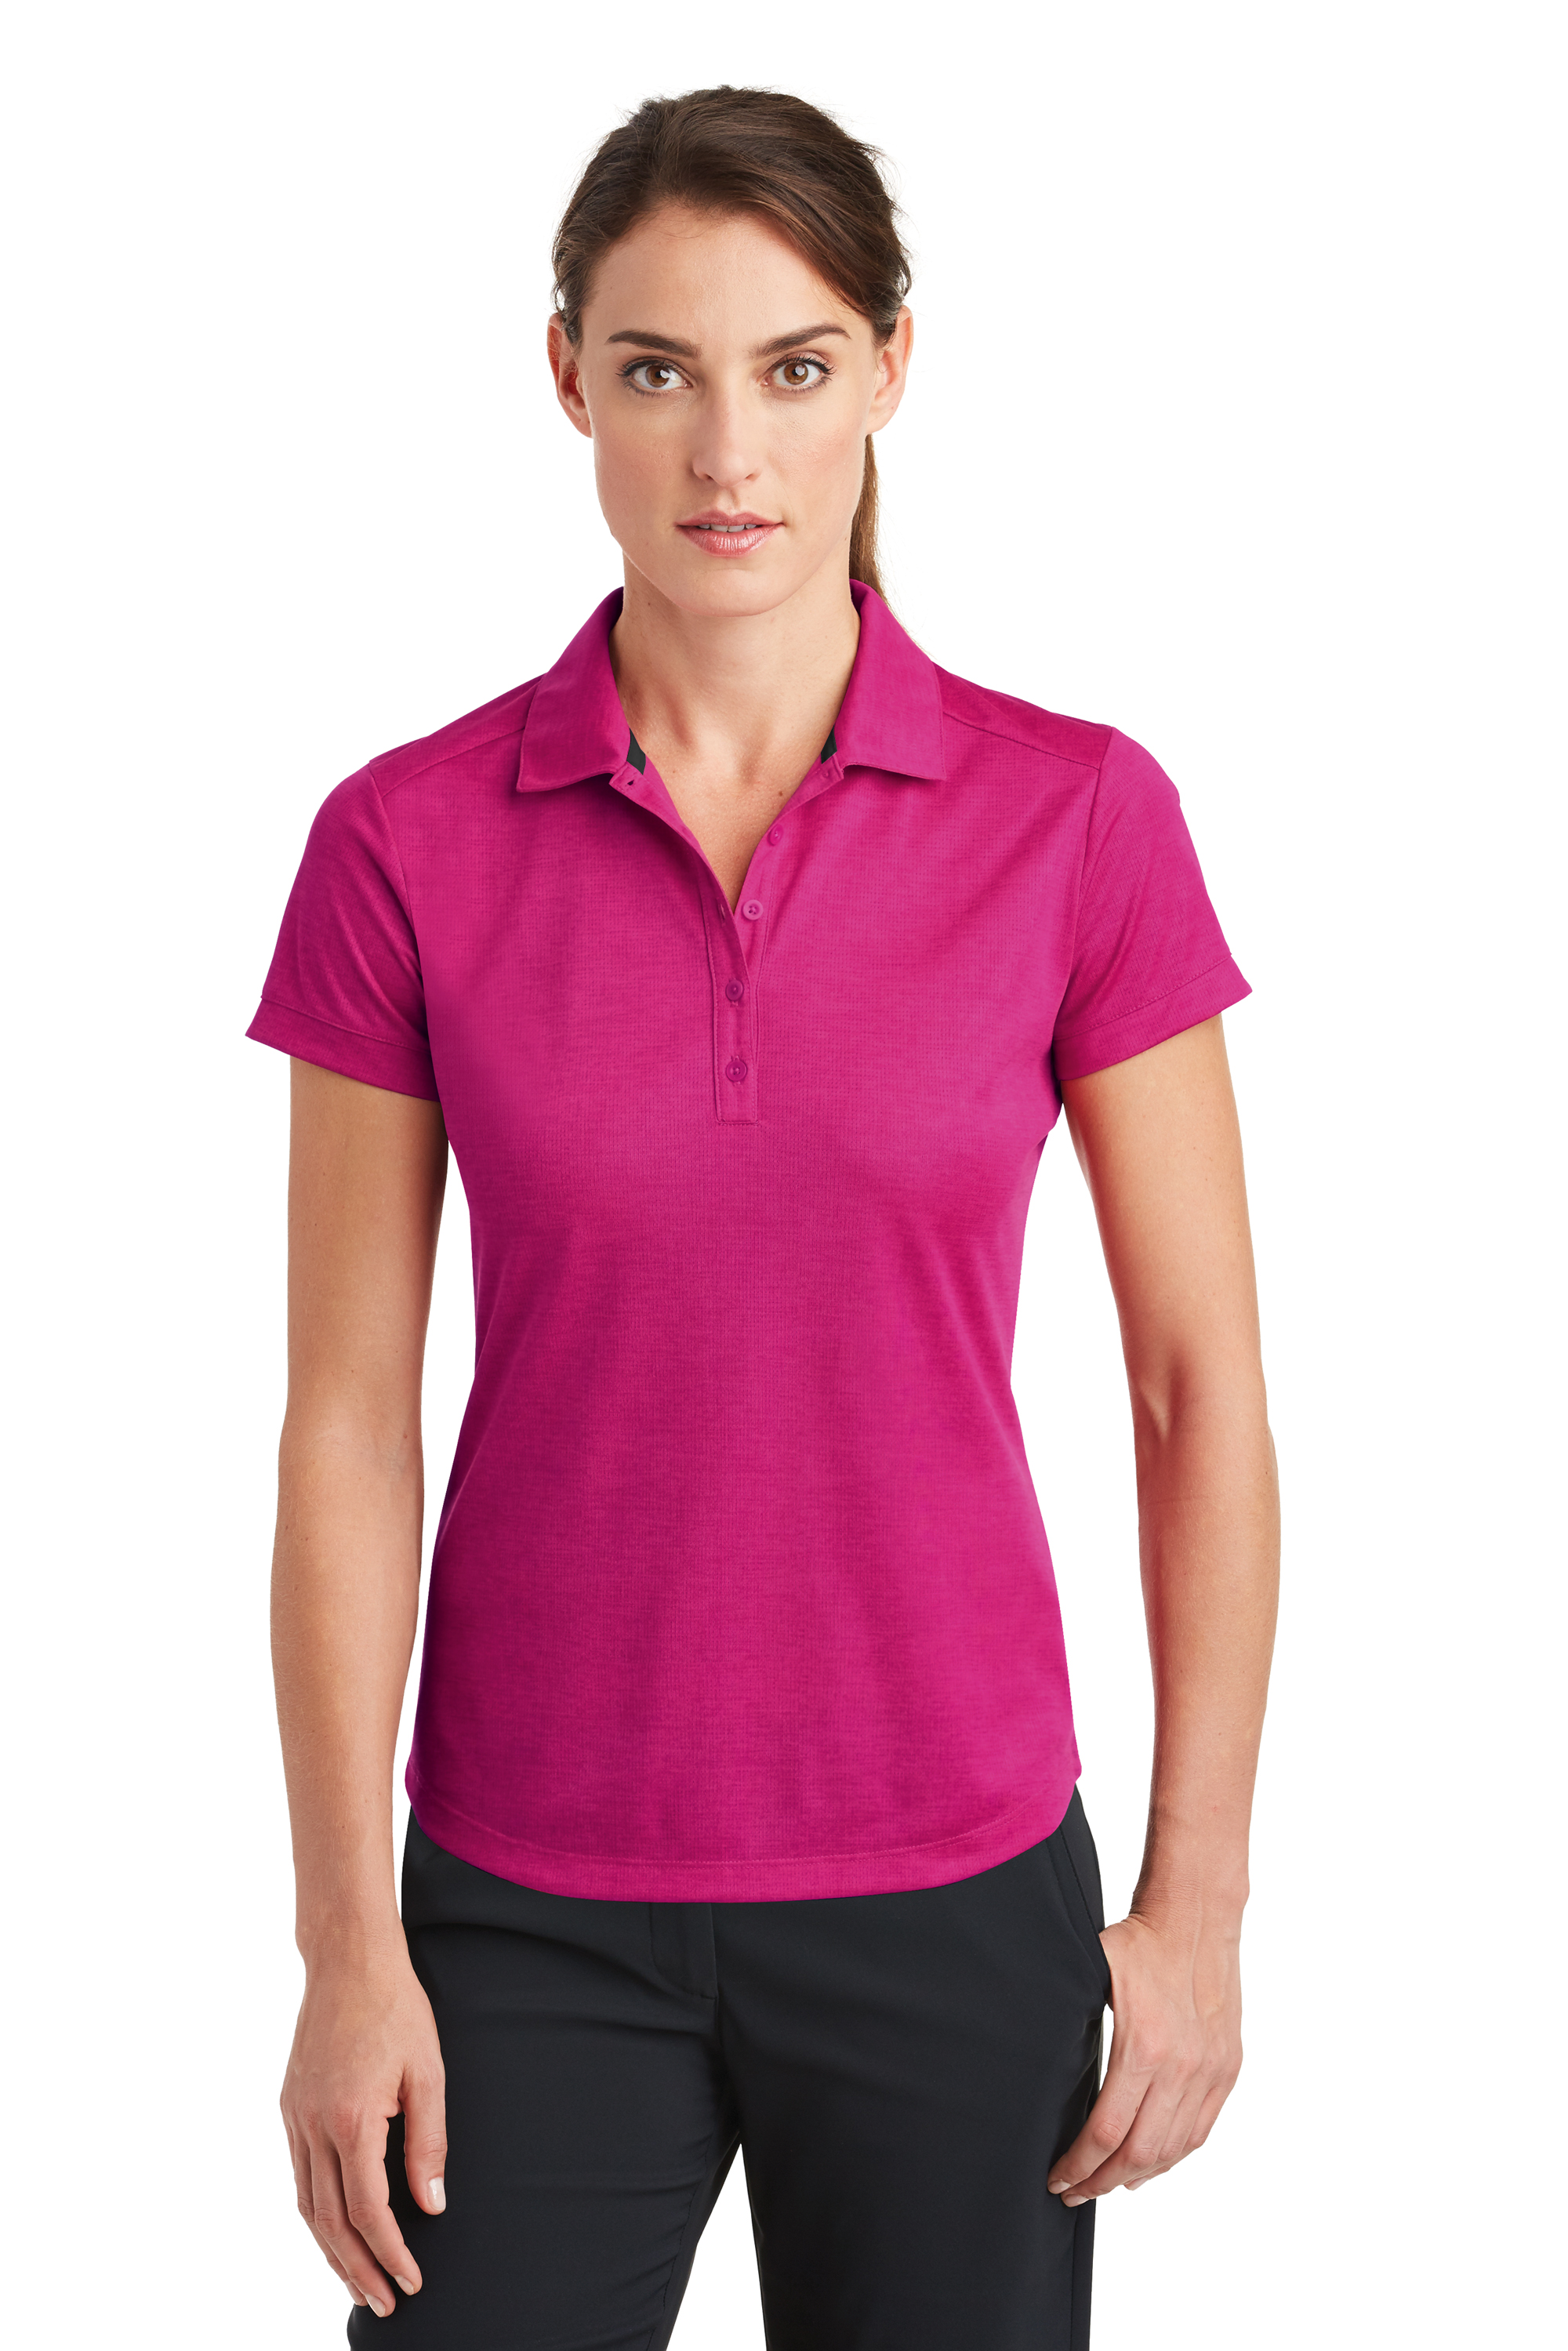 f2ce9627385c1 Nike Golf Women's Dri-FIT Crosshatch Polo. 838961. Nike Fusion  Pink/Fireberry; Nike ...